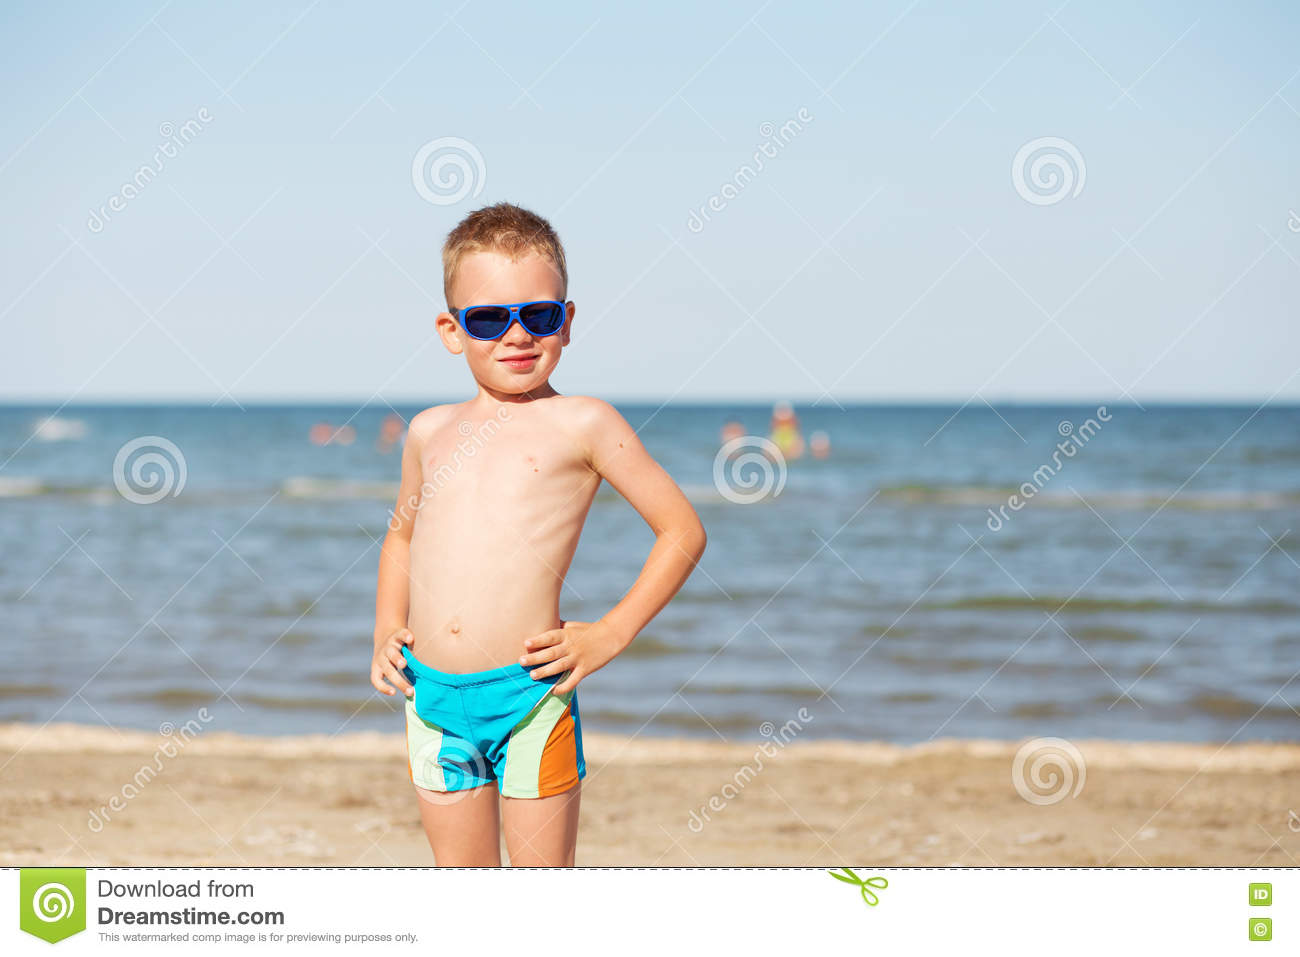 Kid beach pic 72